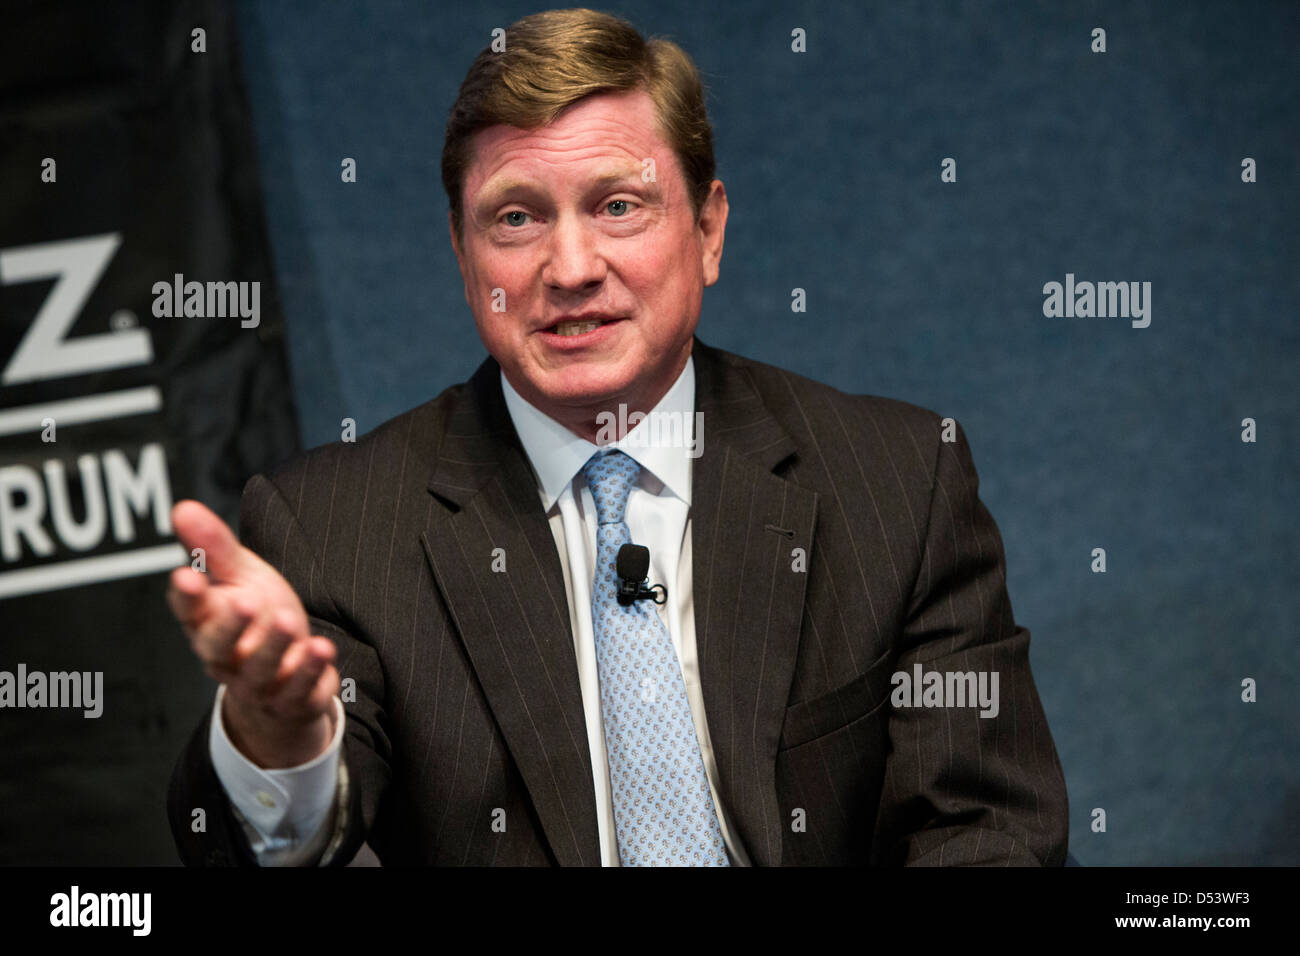 Thomas Fanning, chairman, president and CEO of Southern Company. Stock Photo